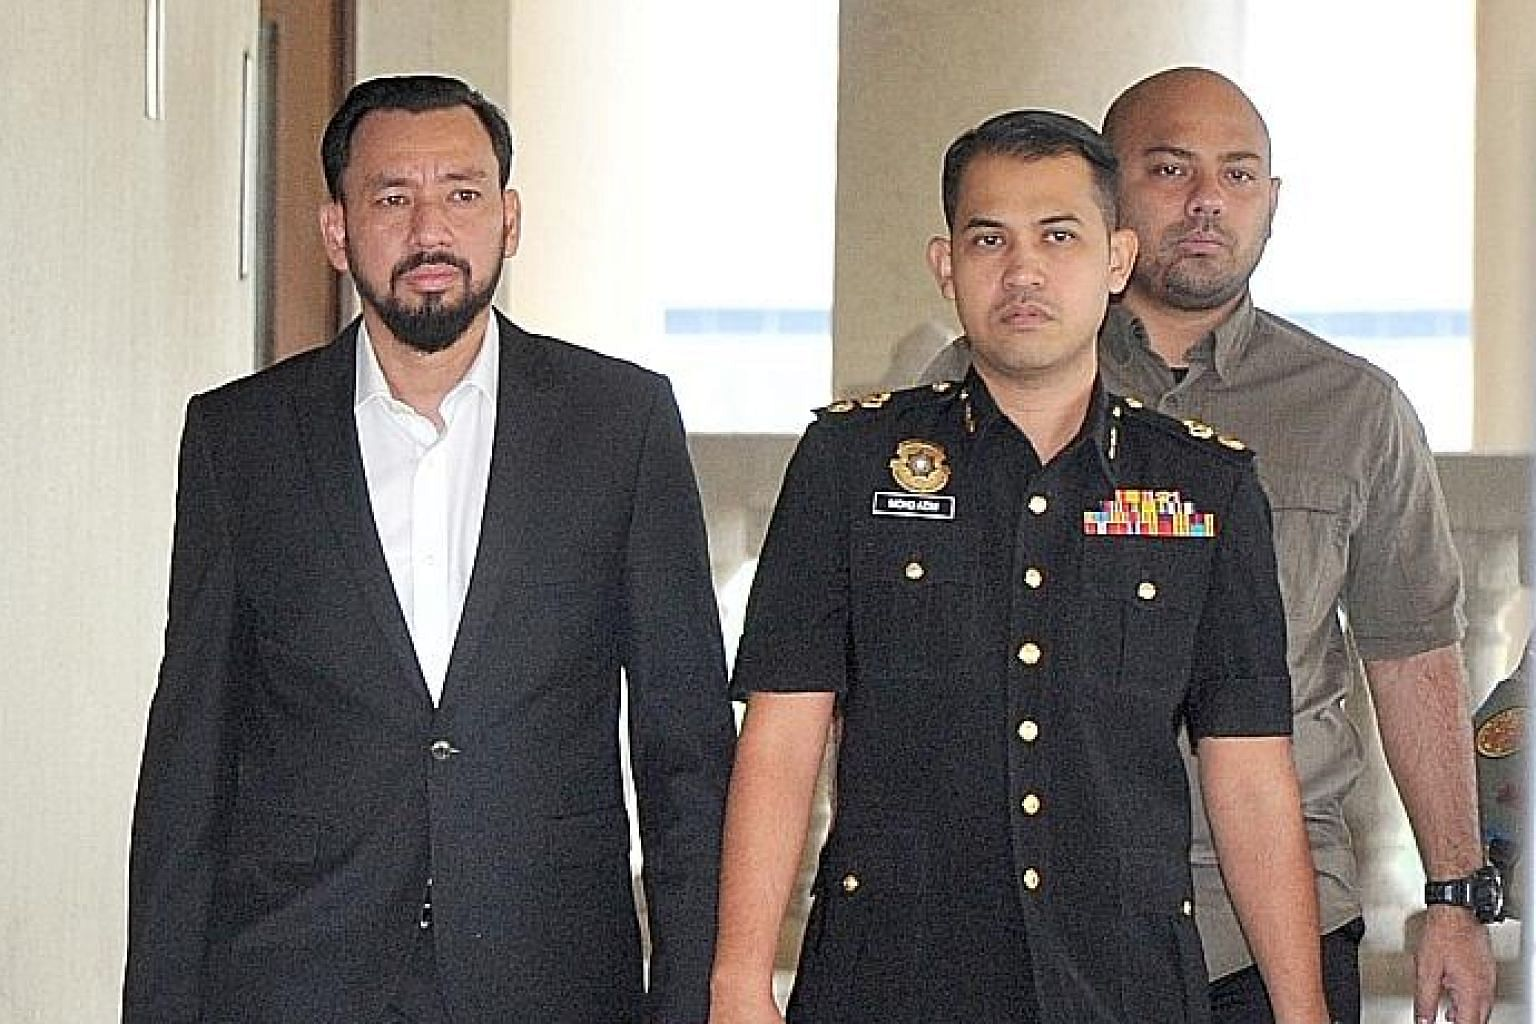 Datuk Amhari Efendi Nazaruddin (far left) is the eighth prosecution witness in the hearing on the alleged role of fugitive financier Low Taek Jho in the 1Malaysia Development Berhad corruption case.